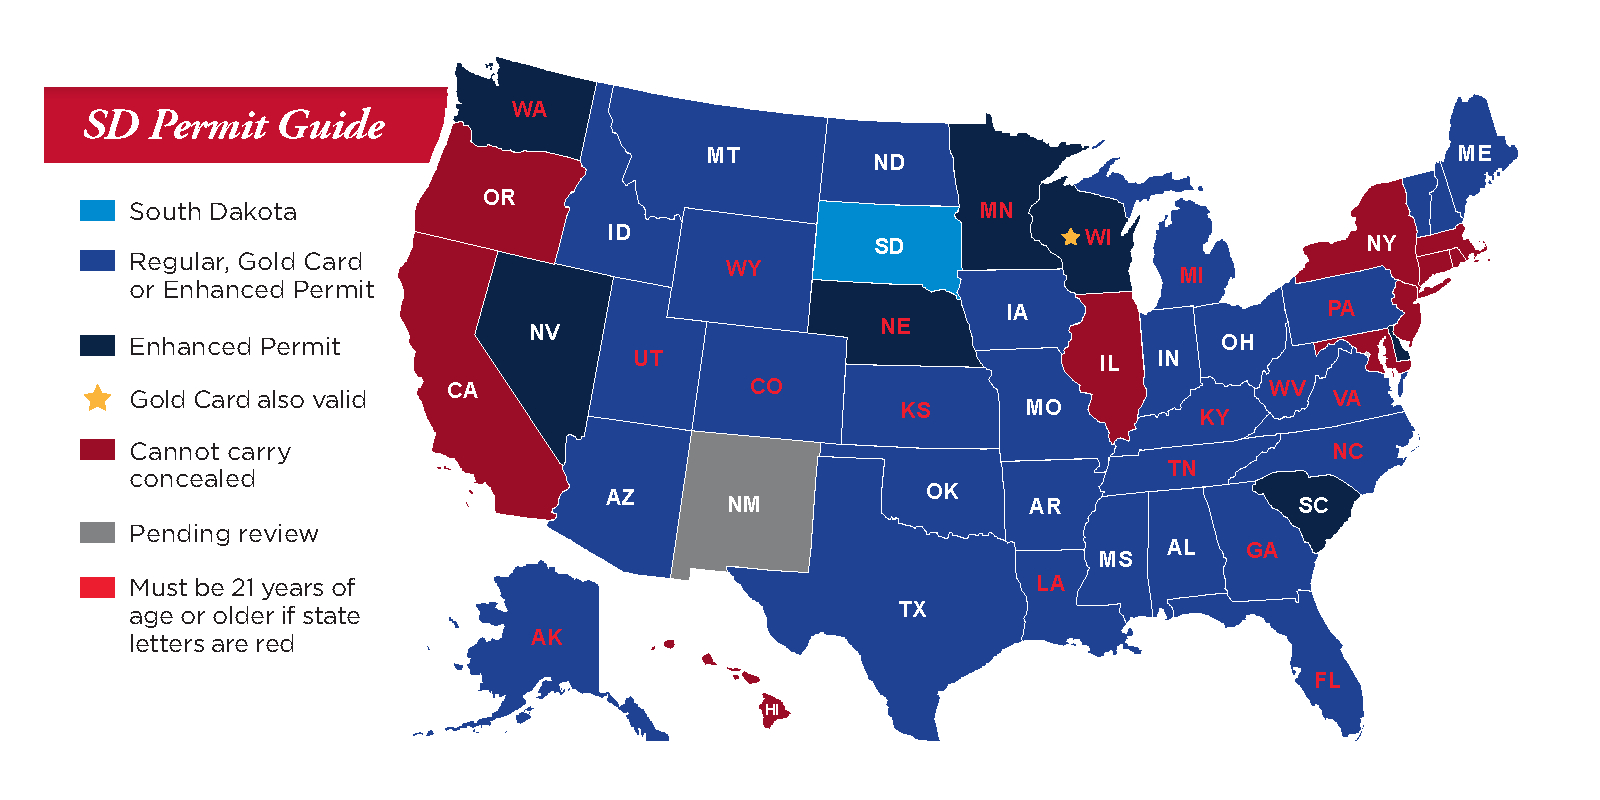 Concealed Pistol Permits: South Dakota Secretary Of State - Texas Concealed Carry Reciprocity Map